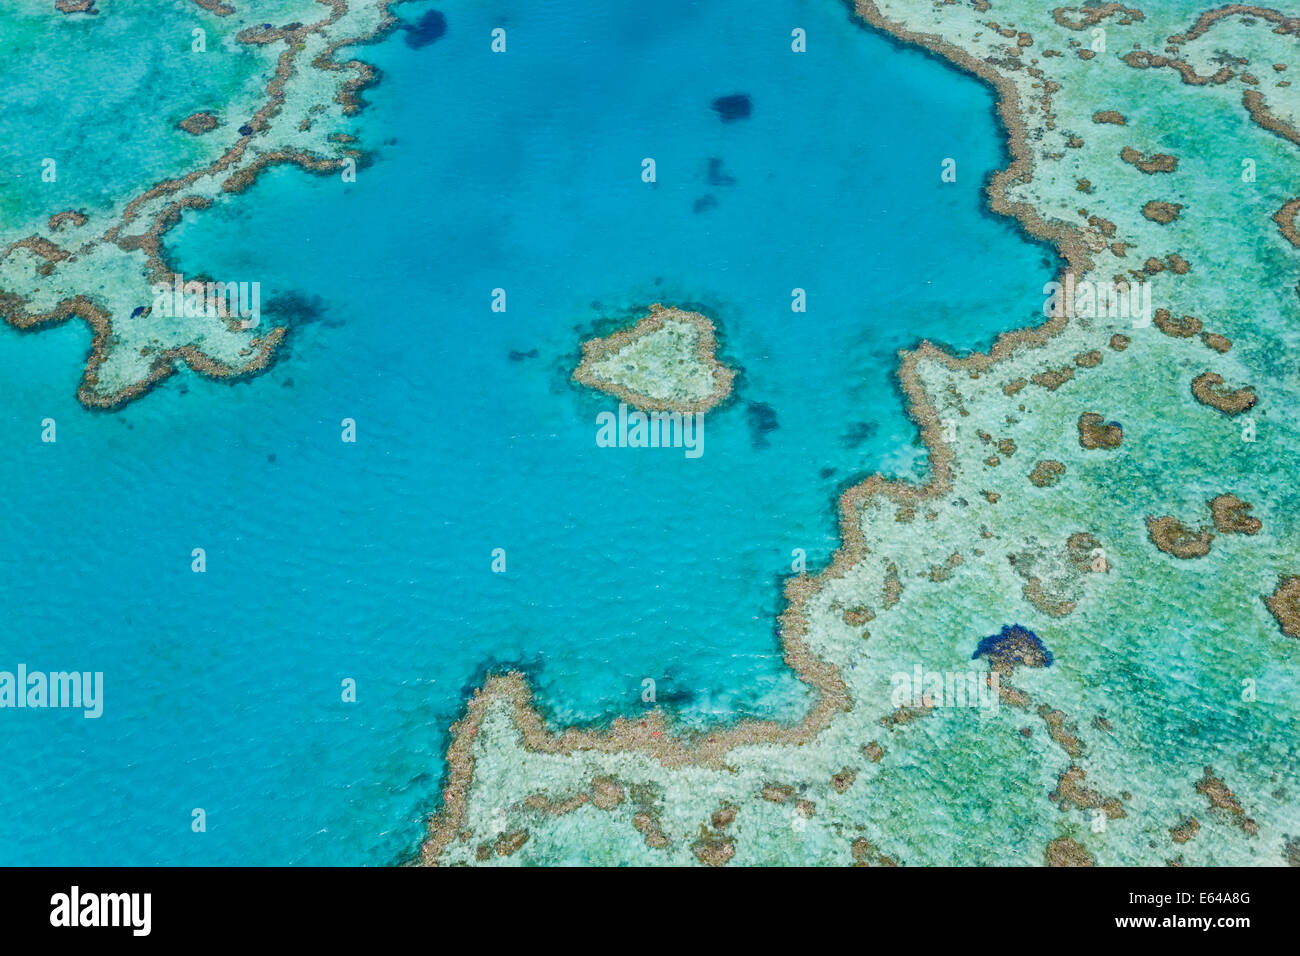 Aerial view of Heart Reef, part of Great Barrier Reef, Queensland, Australia - Stock Image